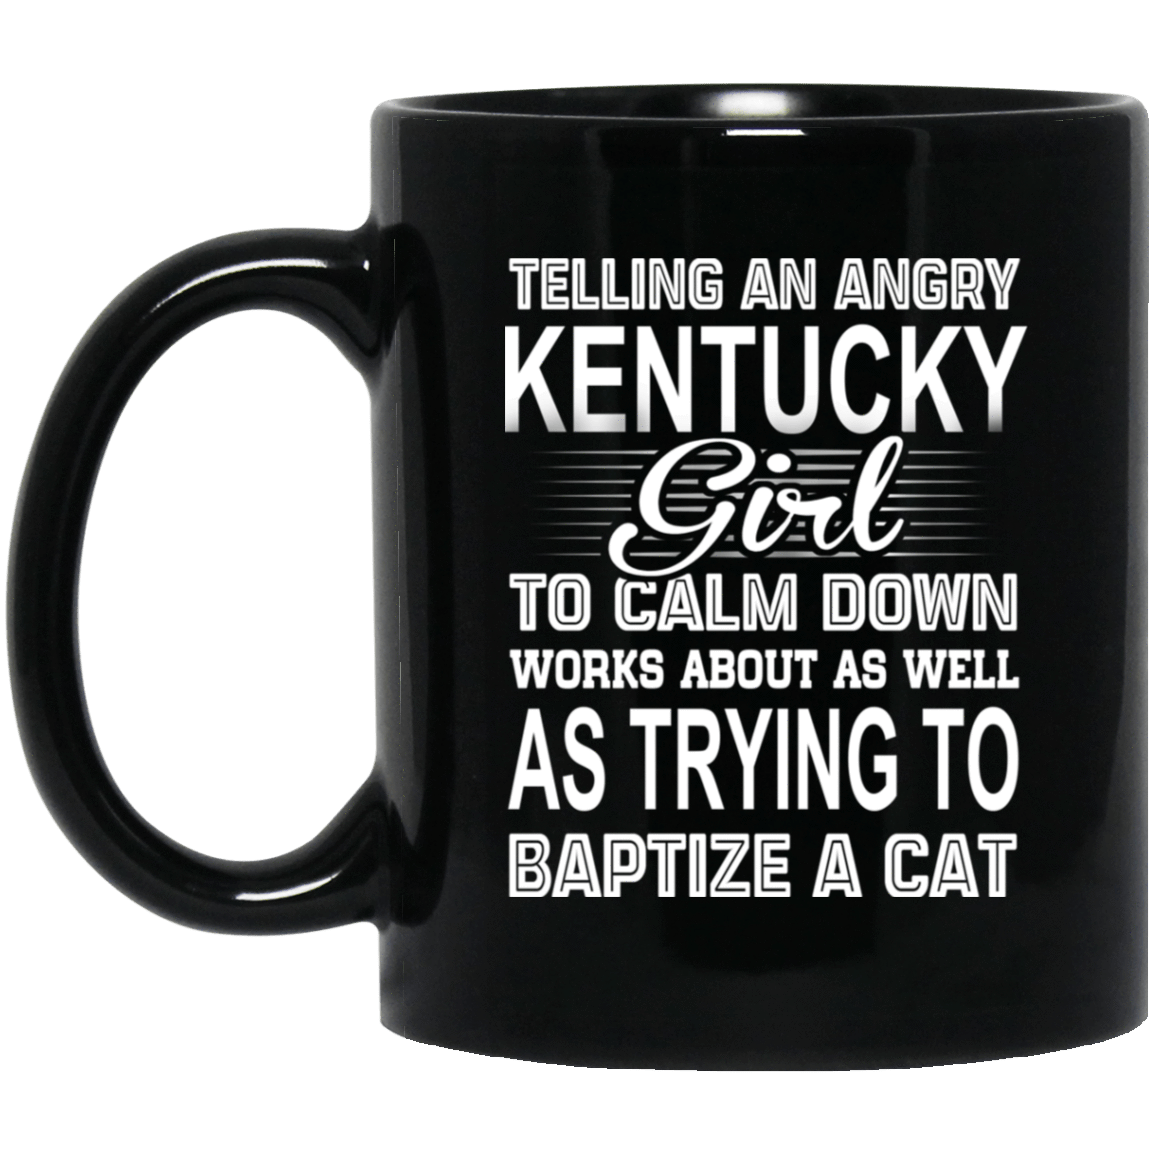 Telling An Angry Kentucky Girl To Calm Down Works About As Well As Trying To Baptize A Cat Mug 1065-10181-76151641-49307 - Tee Ript